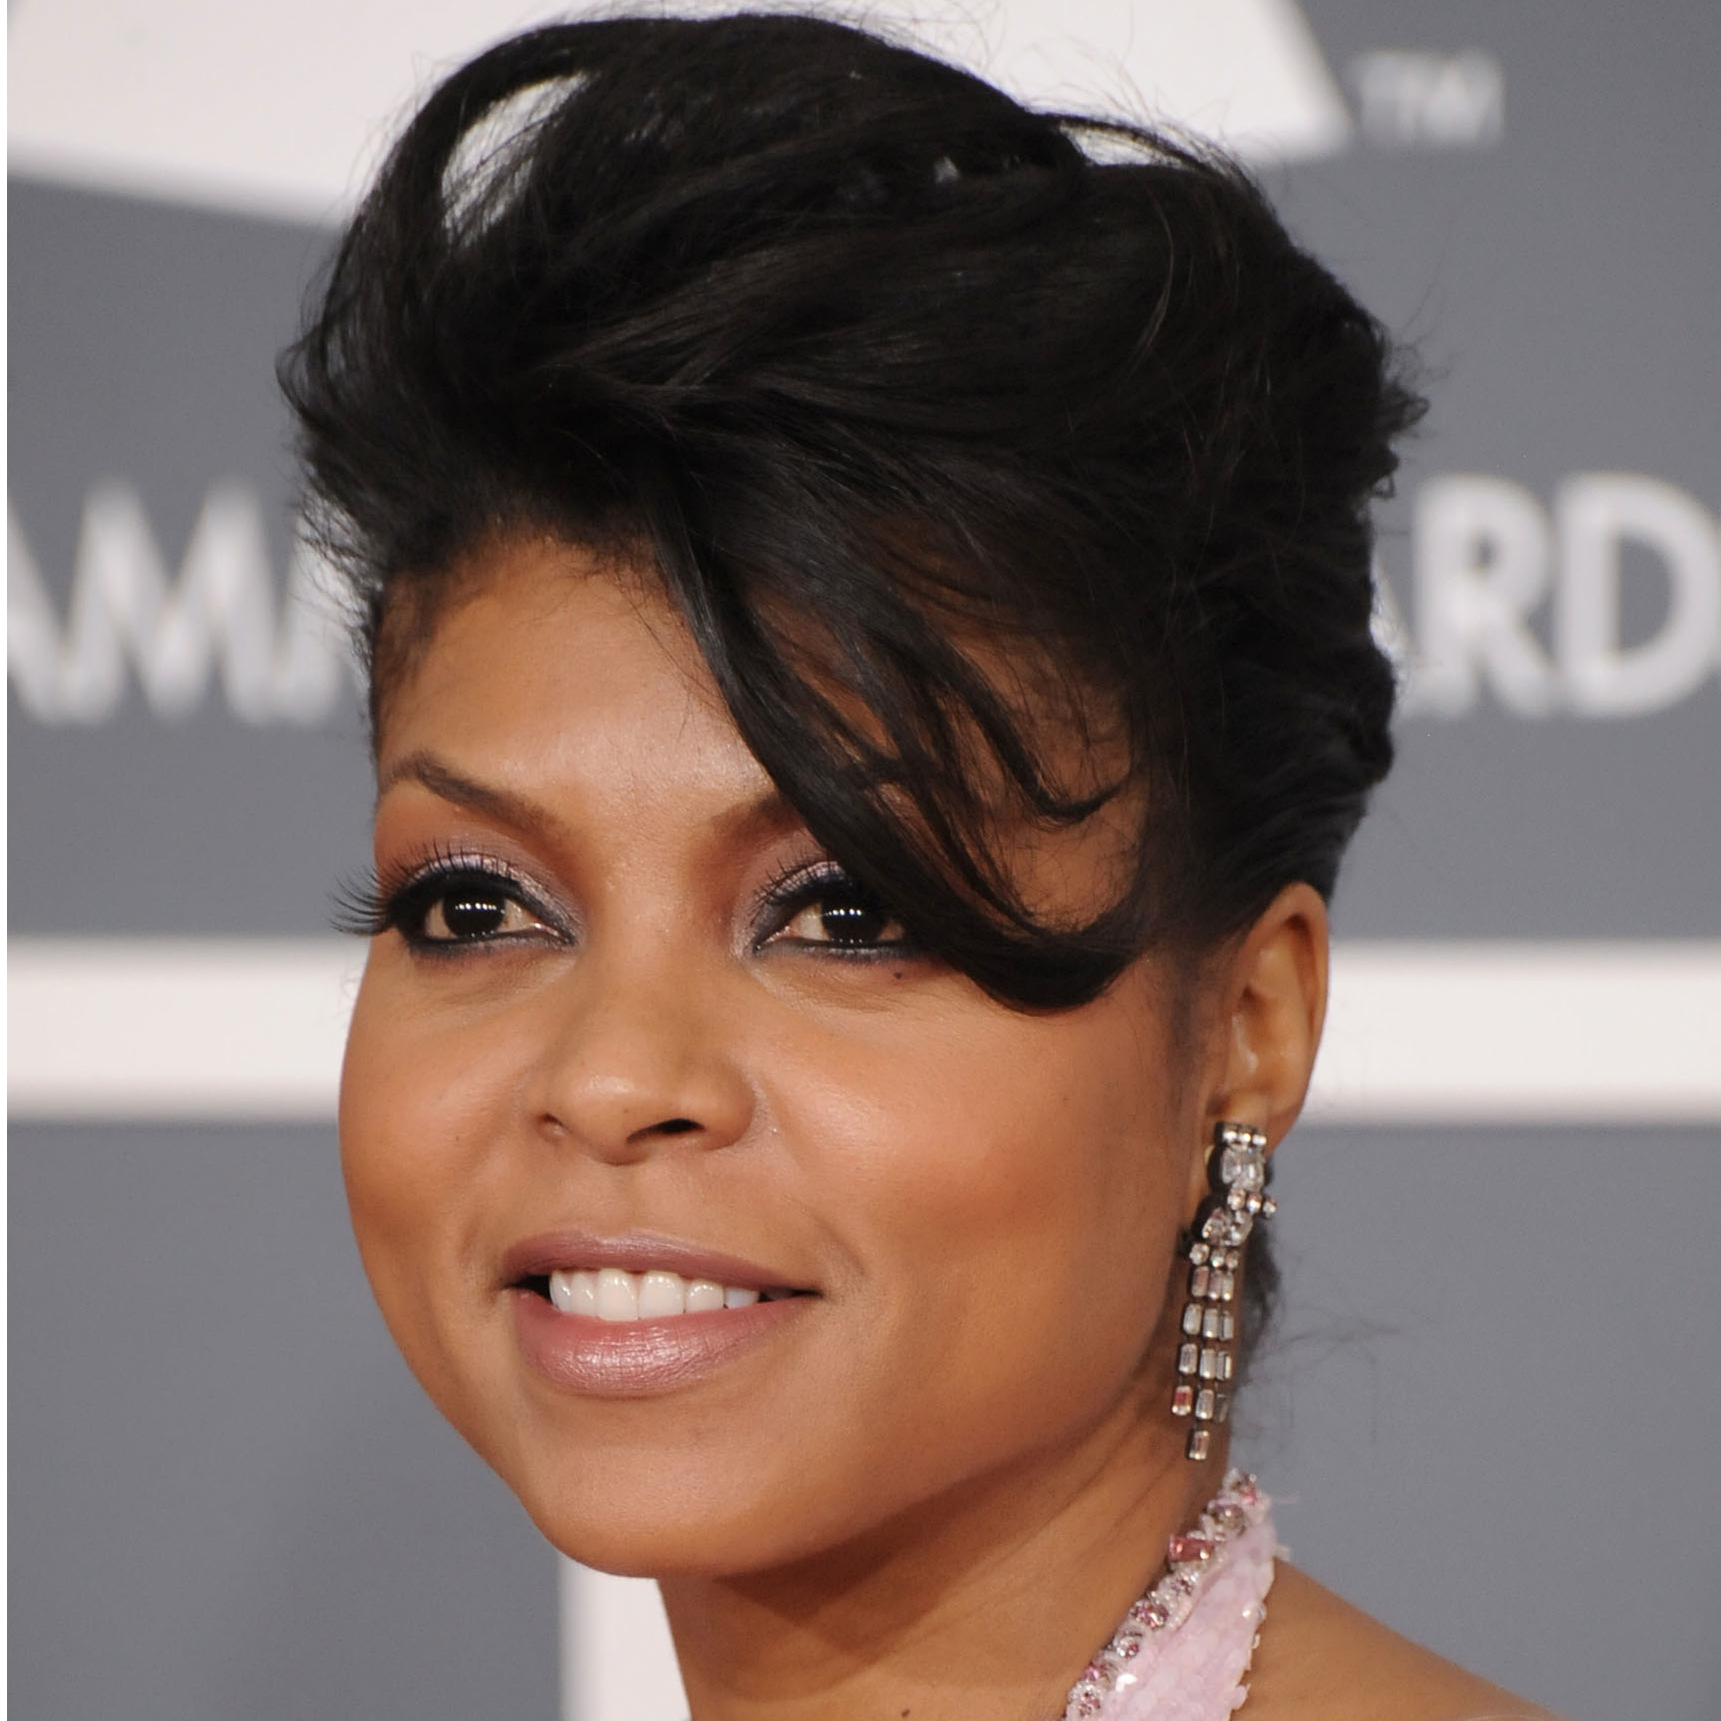 taraji henson pic copy images picture photos wallpaper downloads